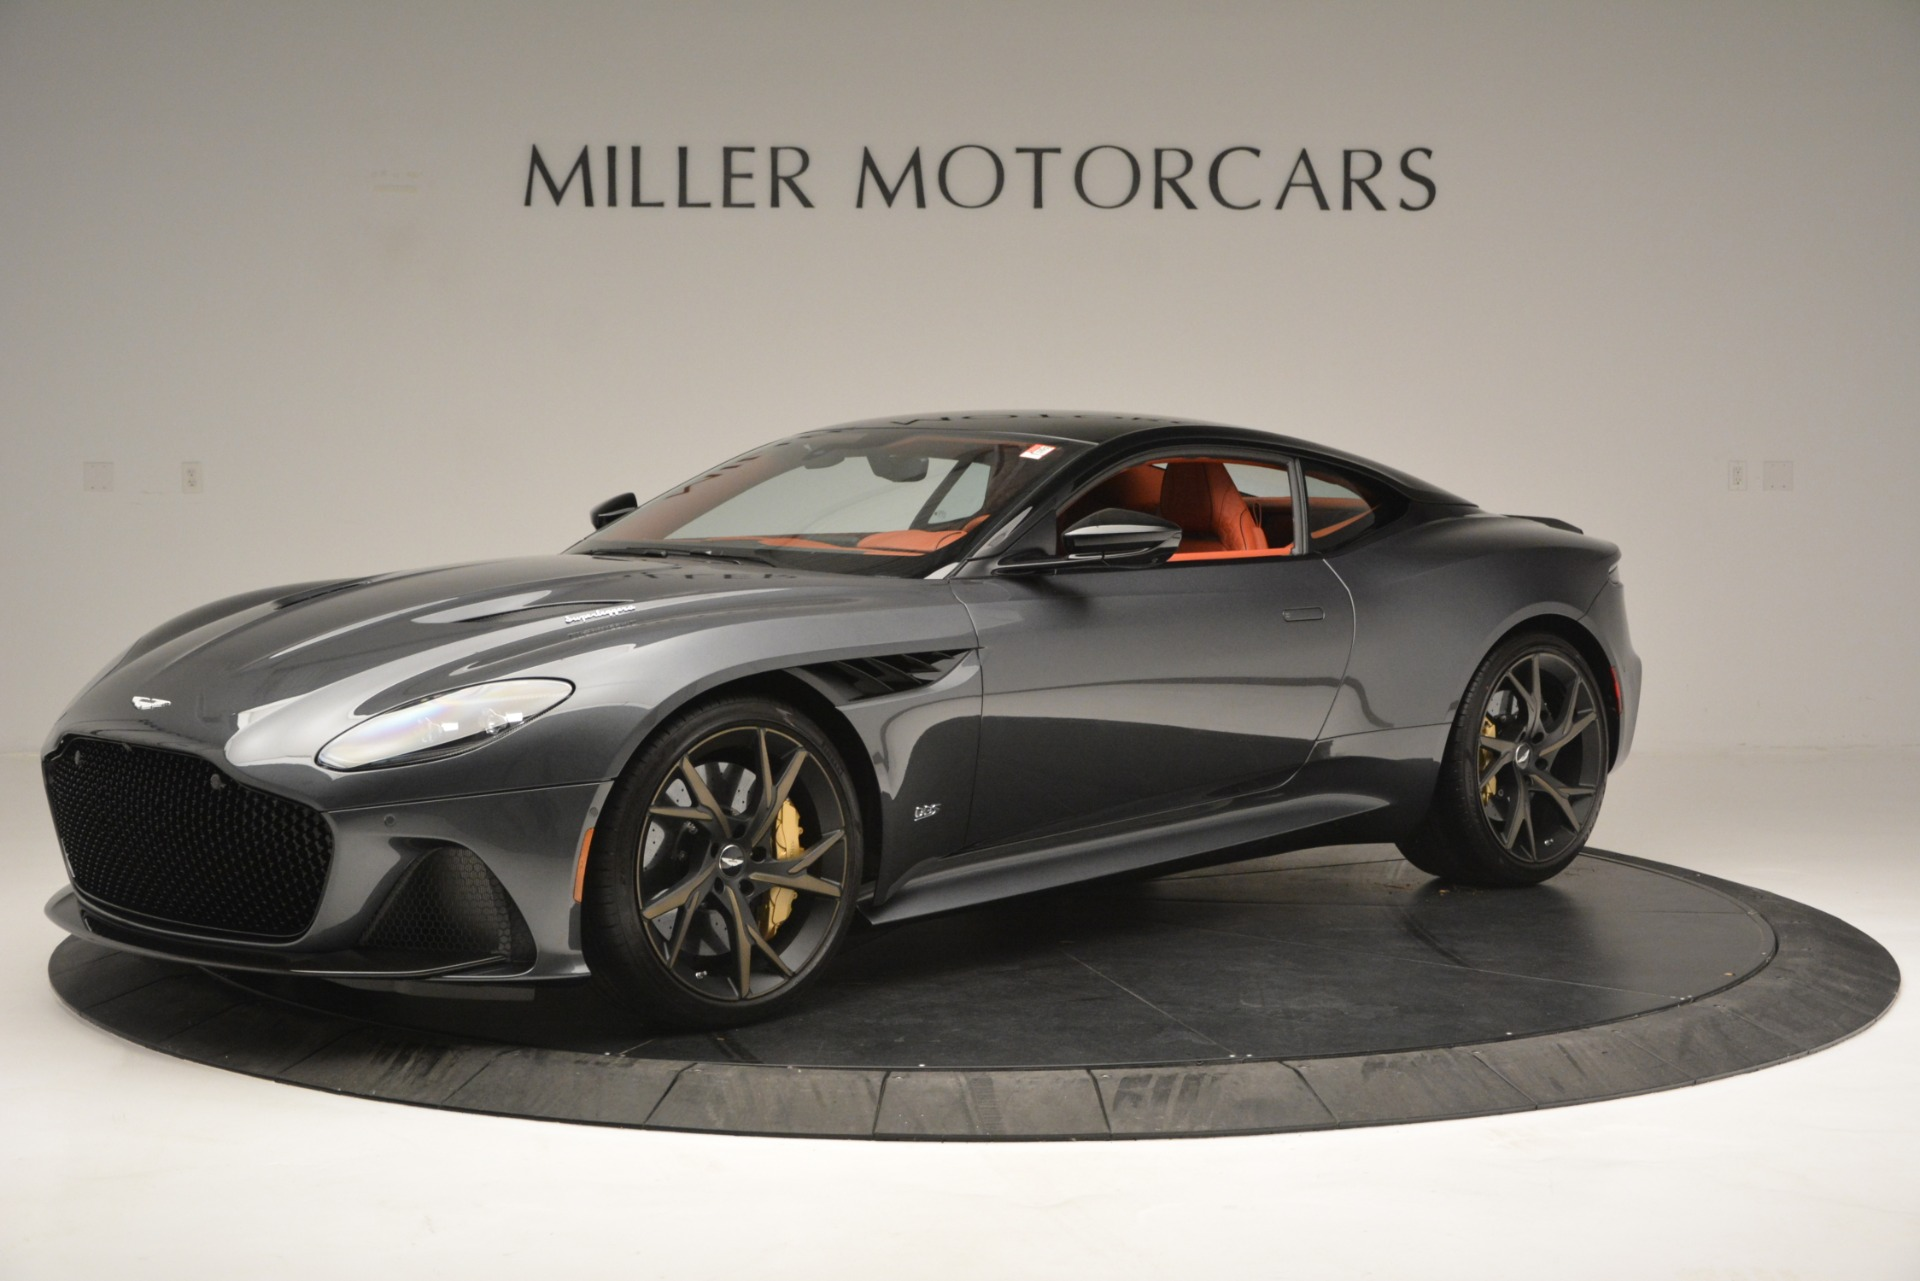 Used 2019 Aston Martin DBS Superleggera Coupe for sale $265,900 at Rolls-Royce Motor Cars Greenwich in Greenwich CT 06830 1